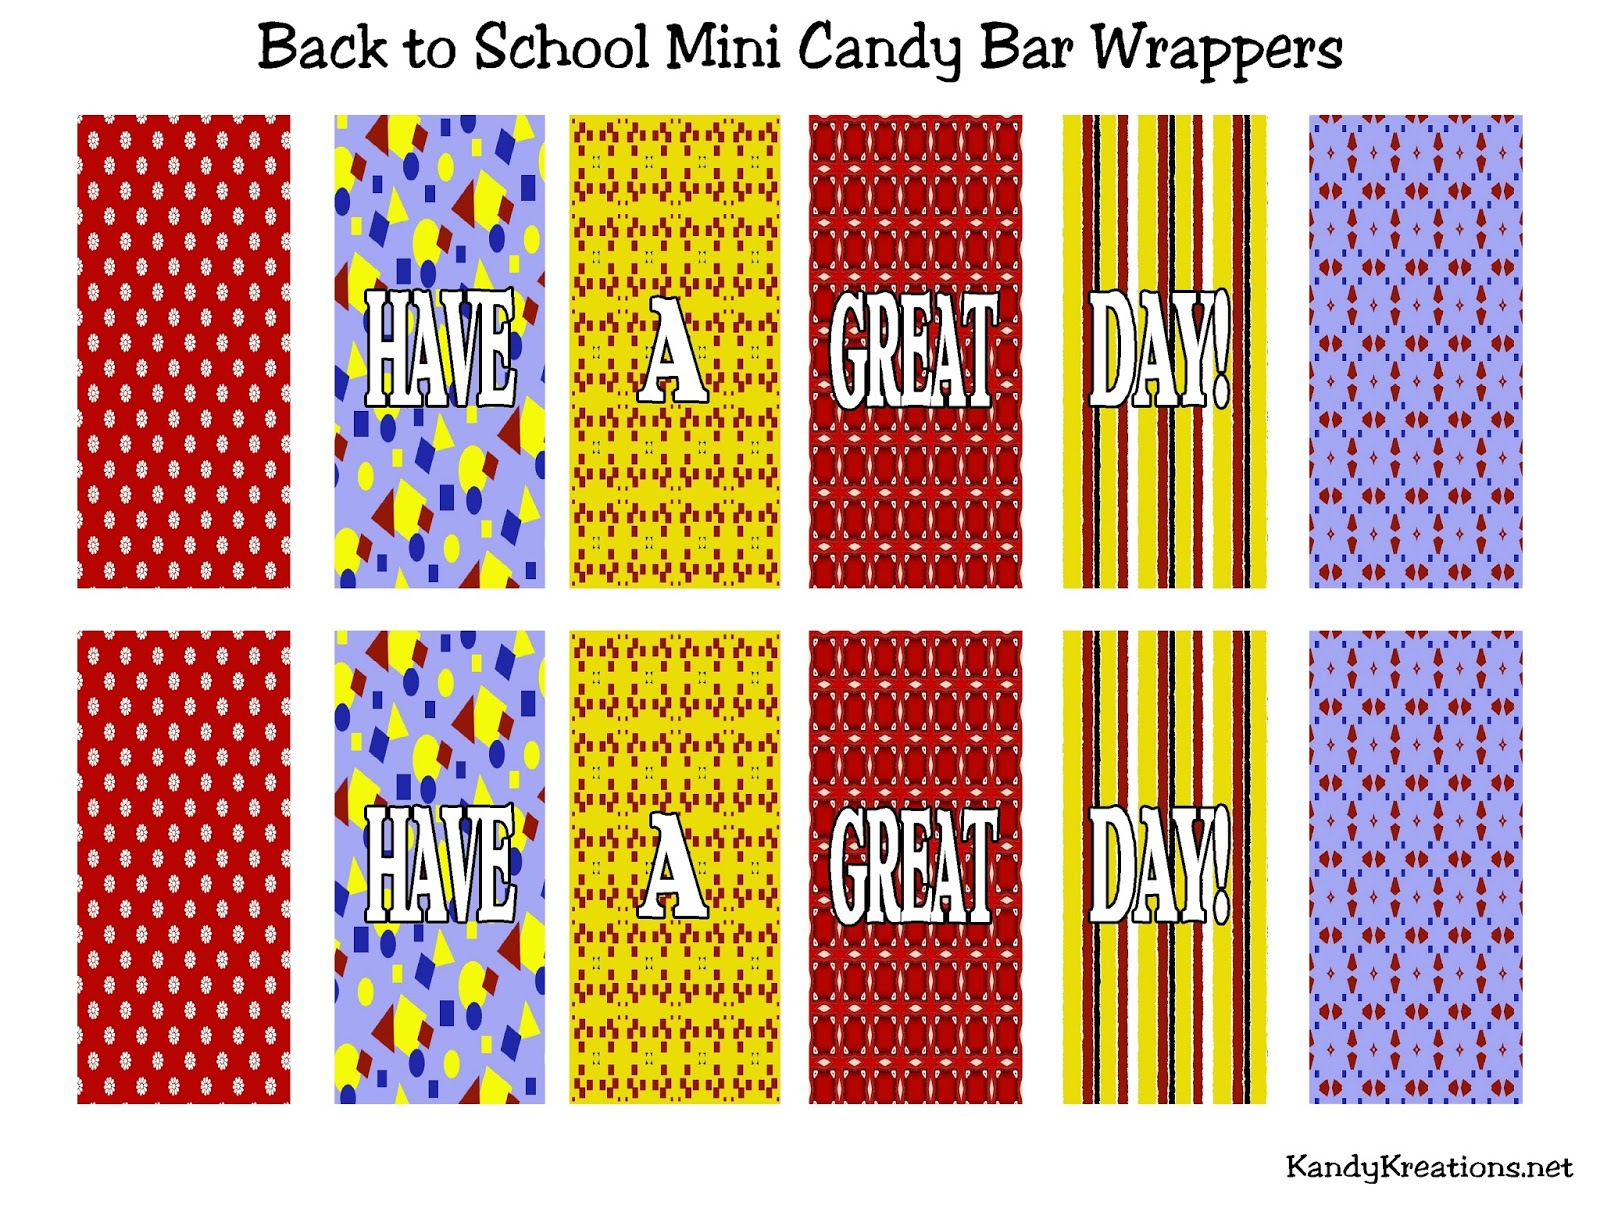 free mini candy bar wrapper template - back to school candy bar template just b cause